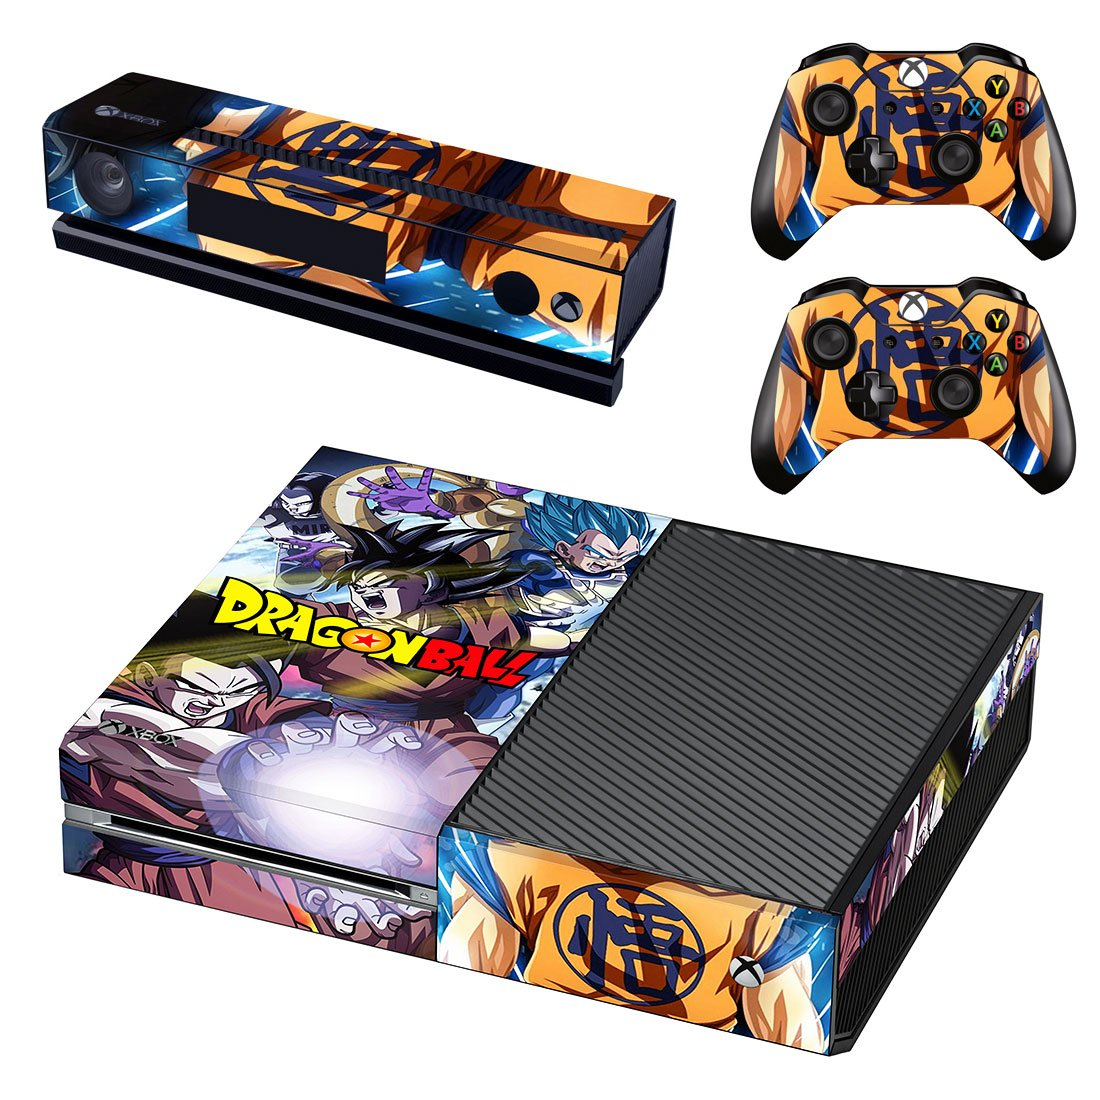 Dragon Ball Xbox One Skin Sticker Wrap